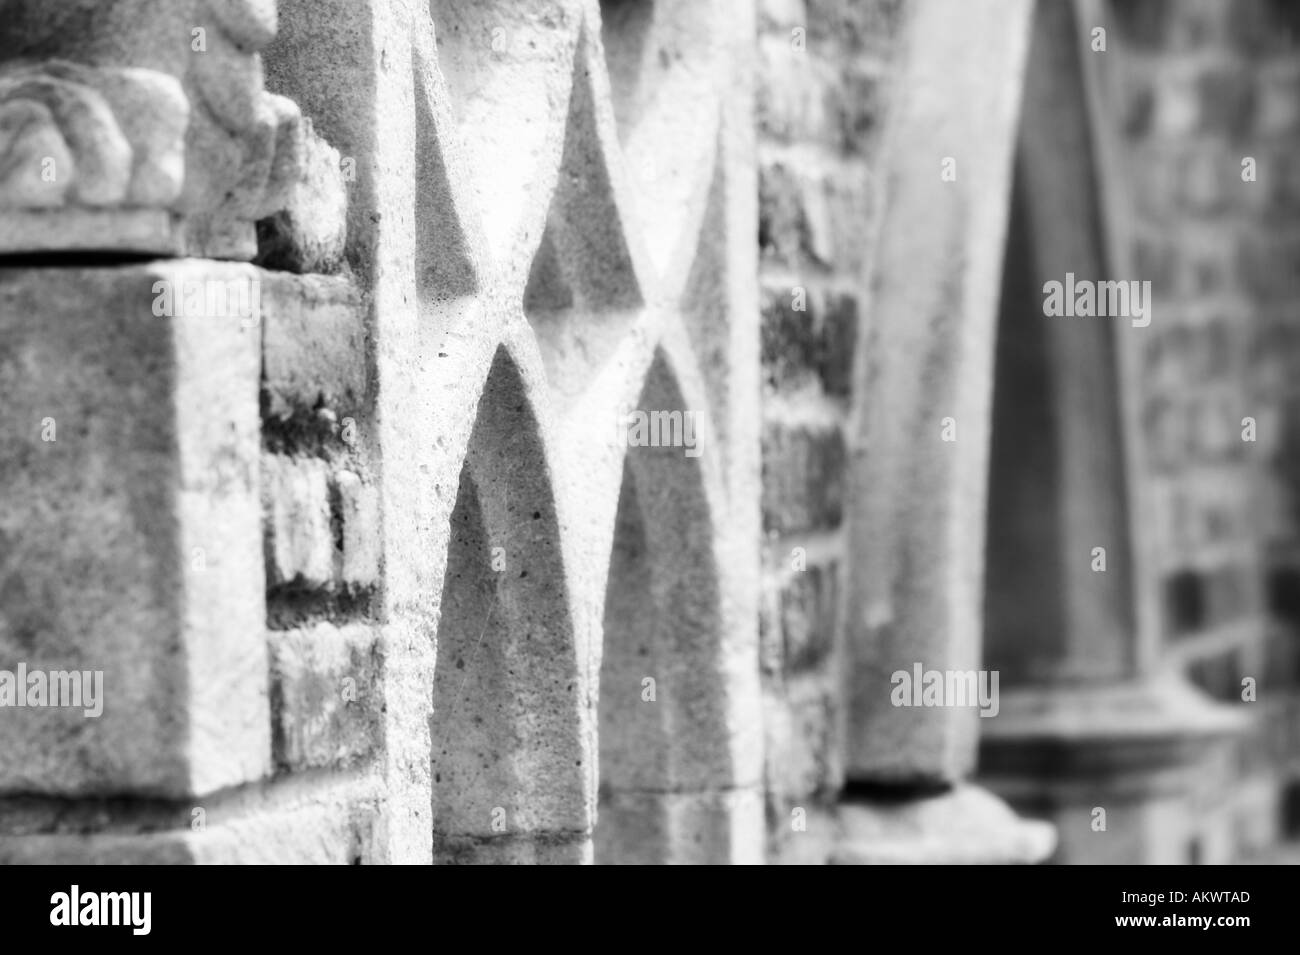 monochrome horizontal stone arches abstract - Stock Image